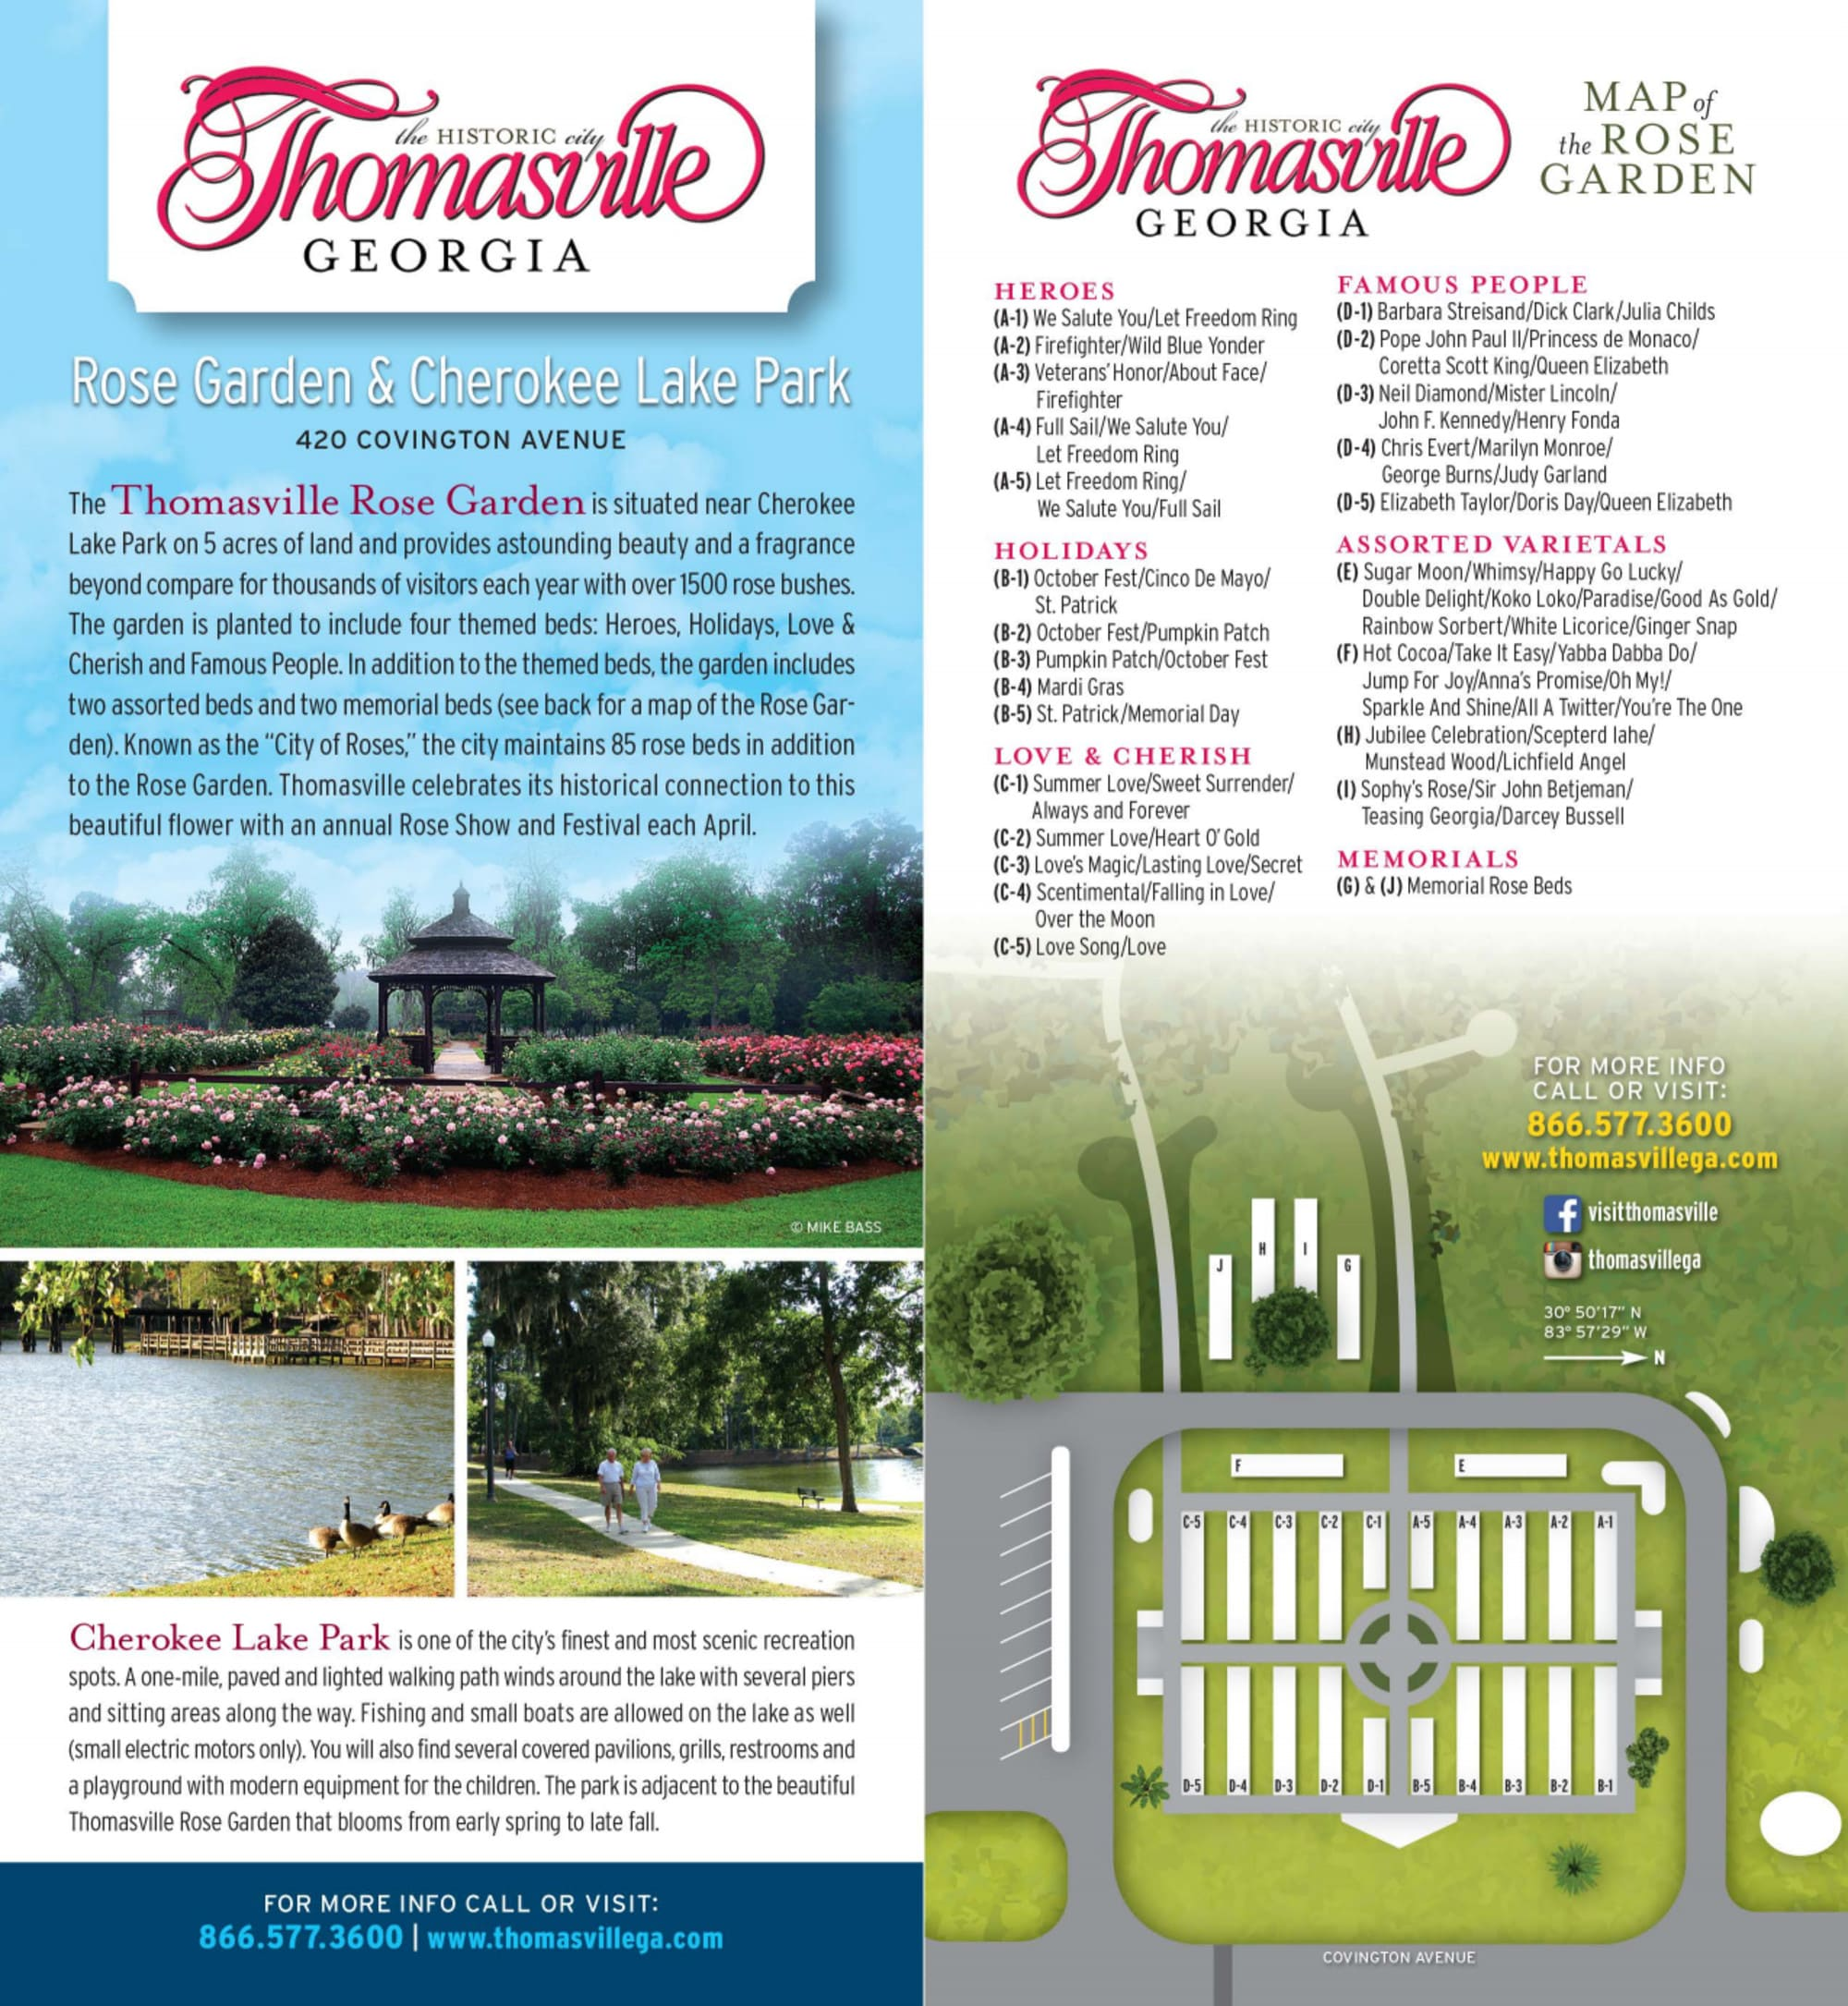 Thomasville Rose Garden and Cherokee Lake Park brochure